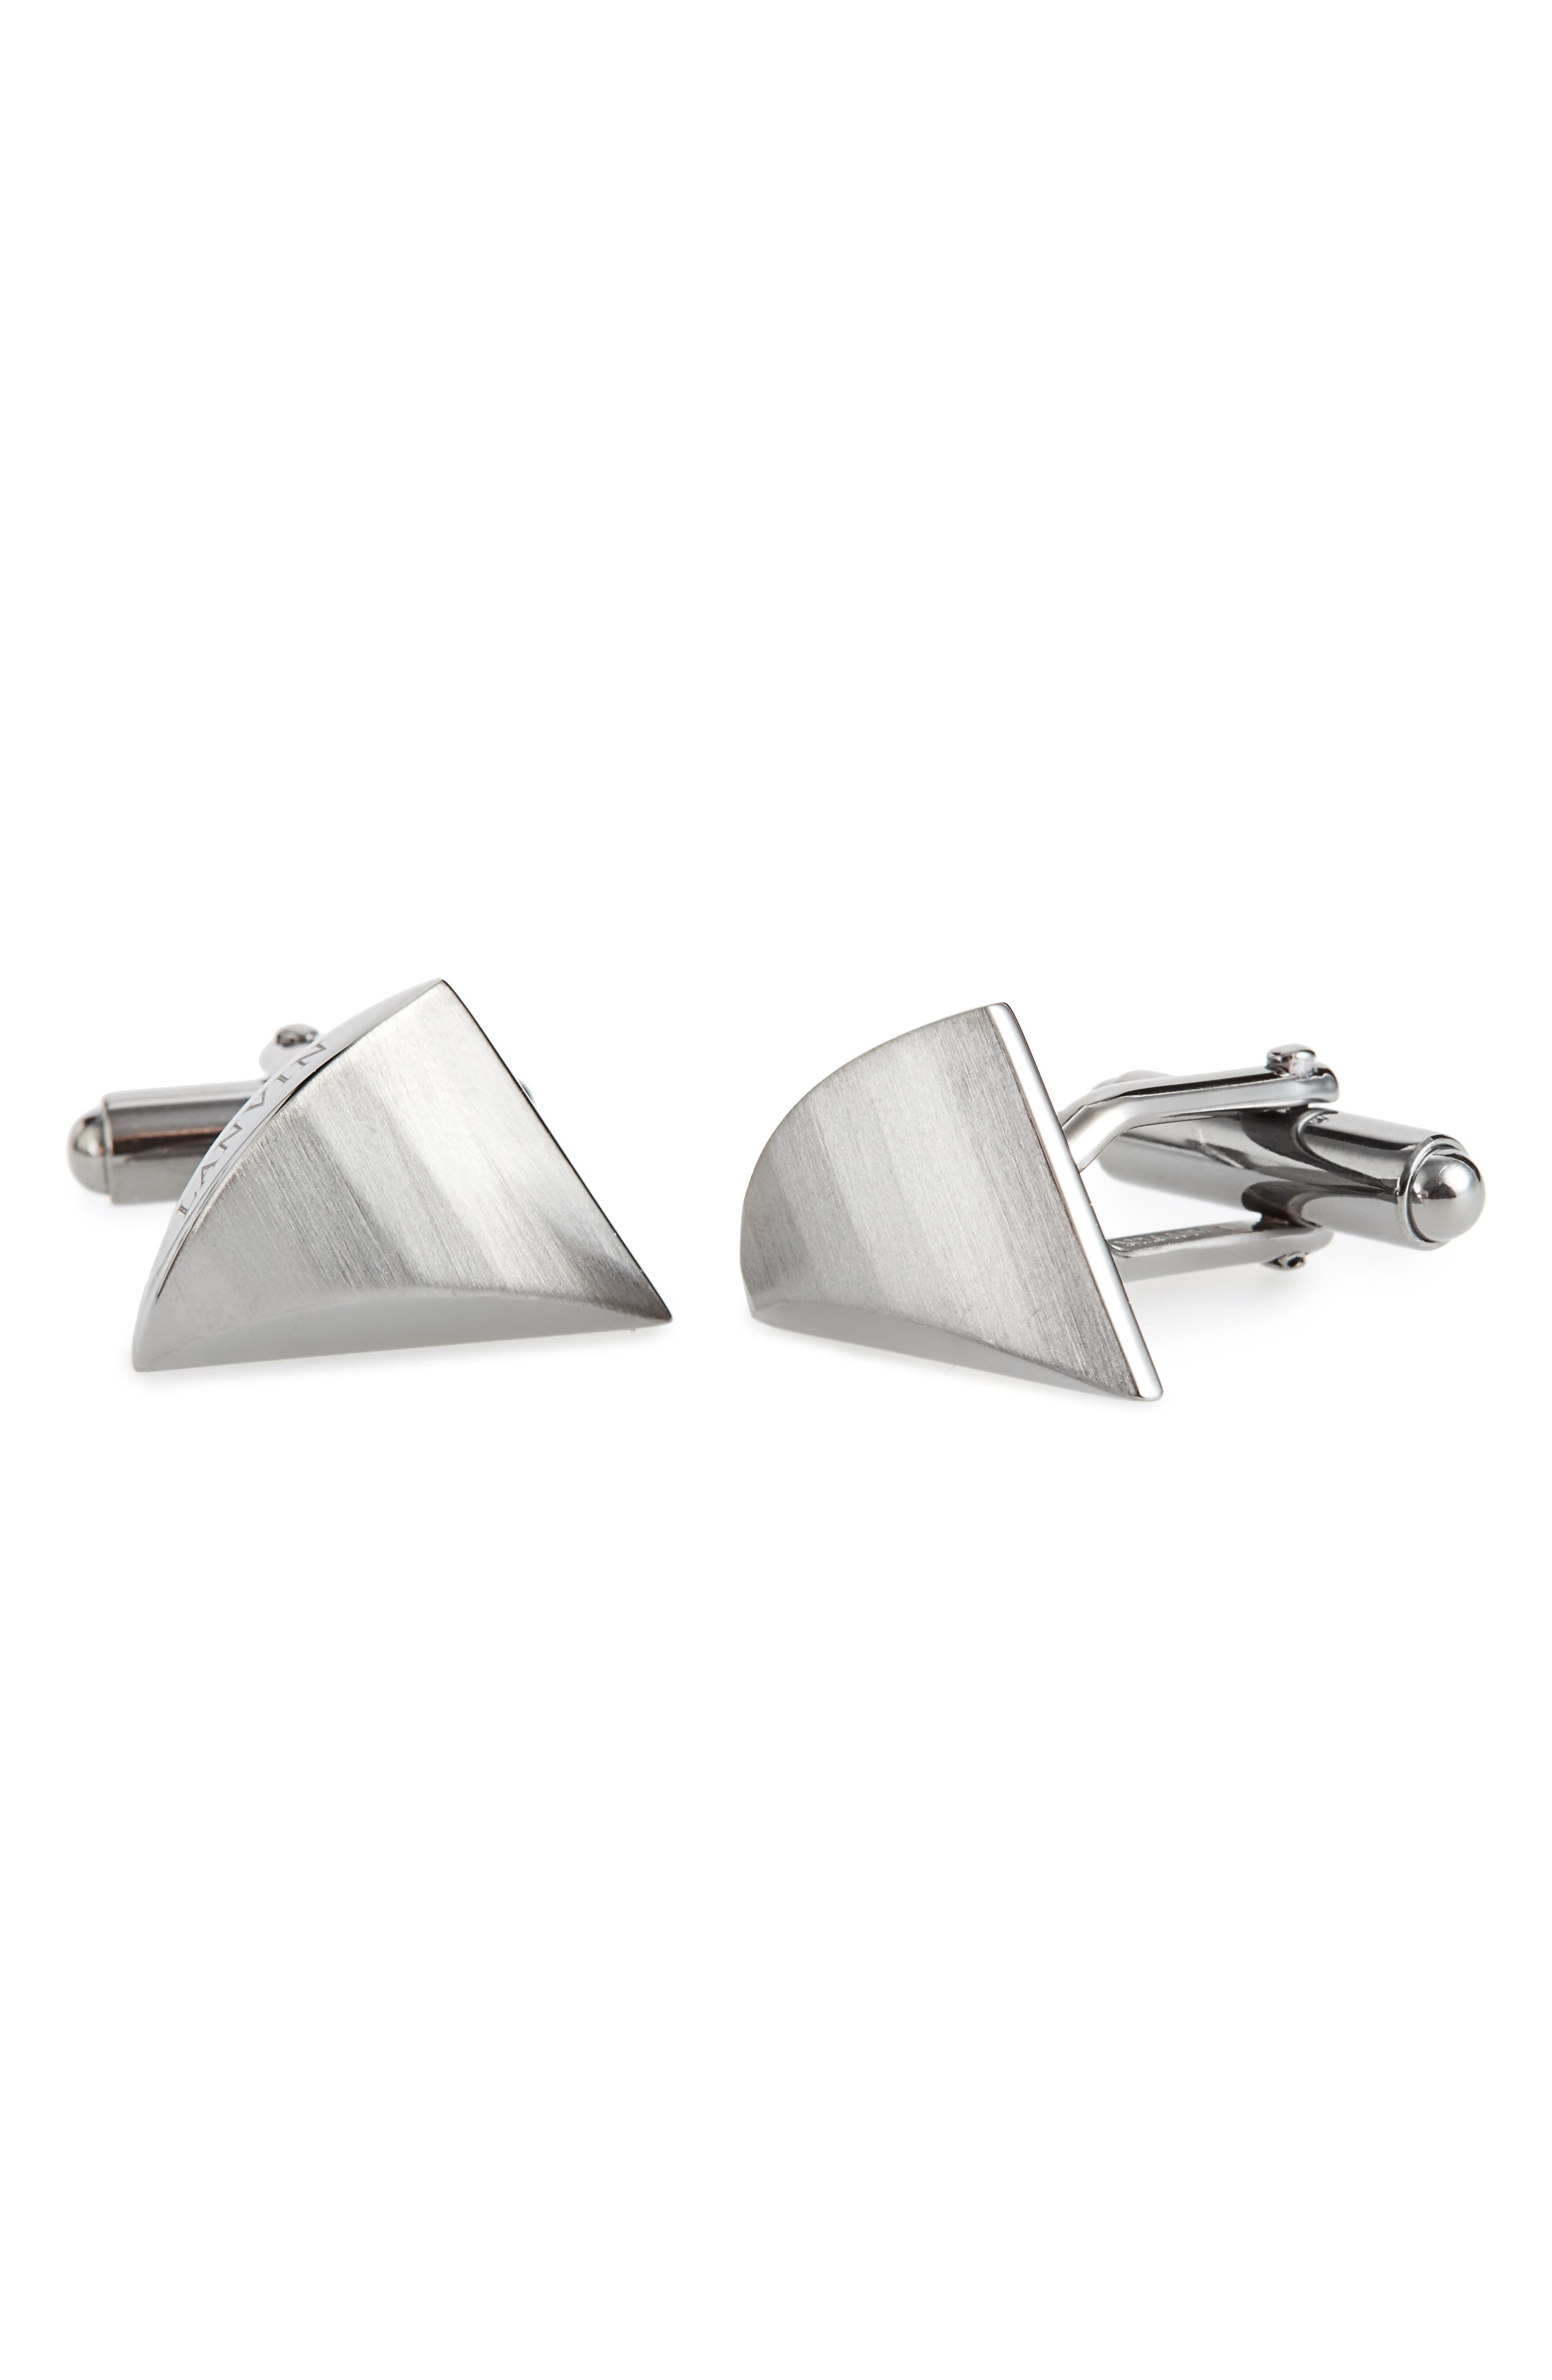 Faux Shark Tooth Cuff Links,                         Main,                         color, SILVER